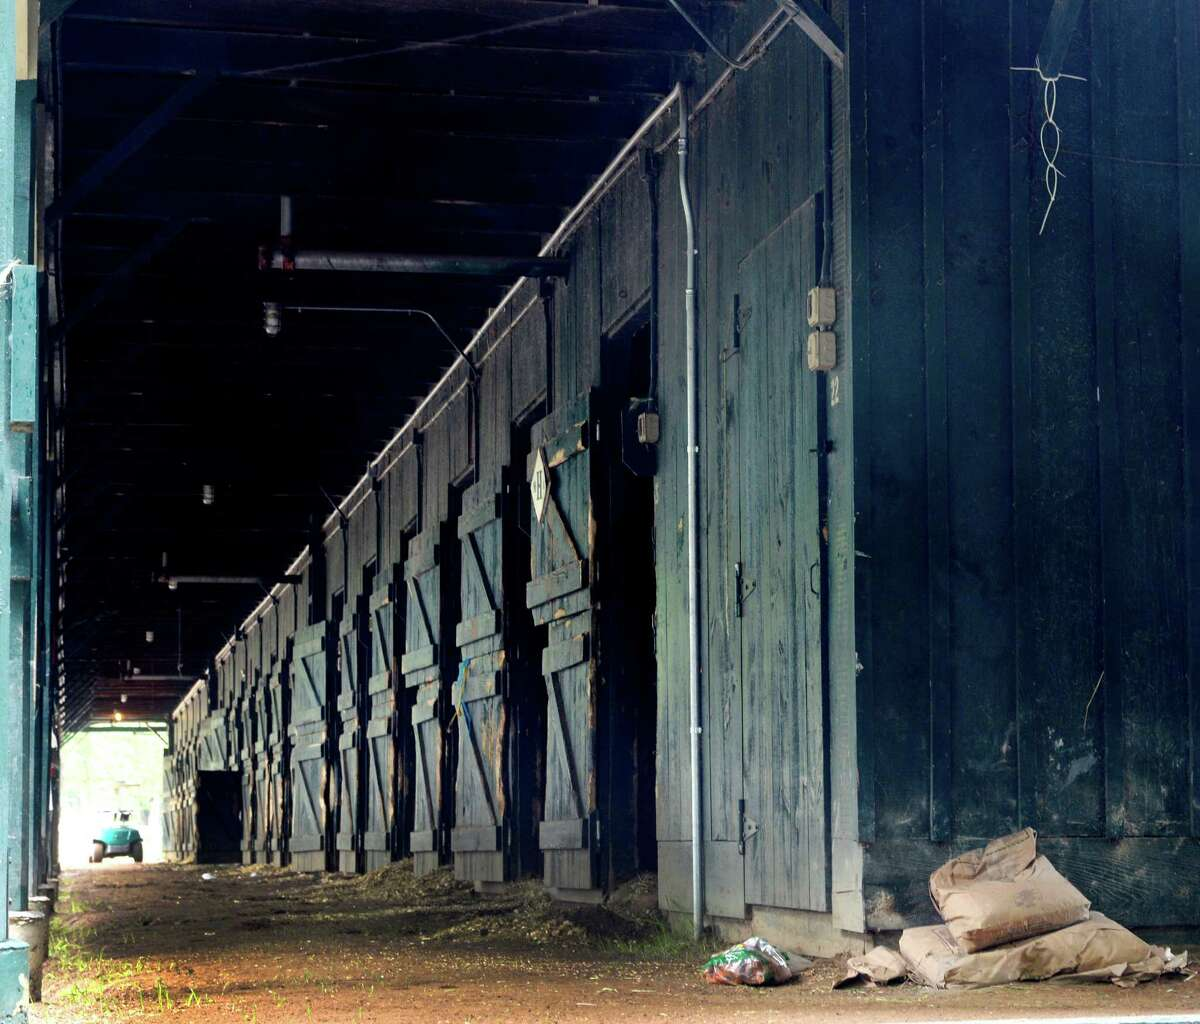 Horses shipped to Belmont Park from this barn early this morning as the 150th meeting comes to a close Sept. 2, 2013, at the Saratoga Race Course in Saratoga Springs, N.Y. (Skip Dickstein/Times Union)